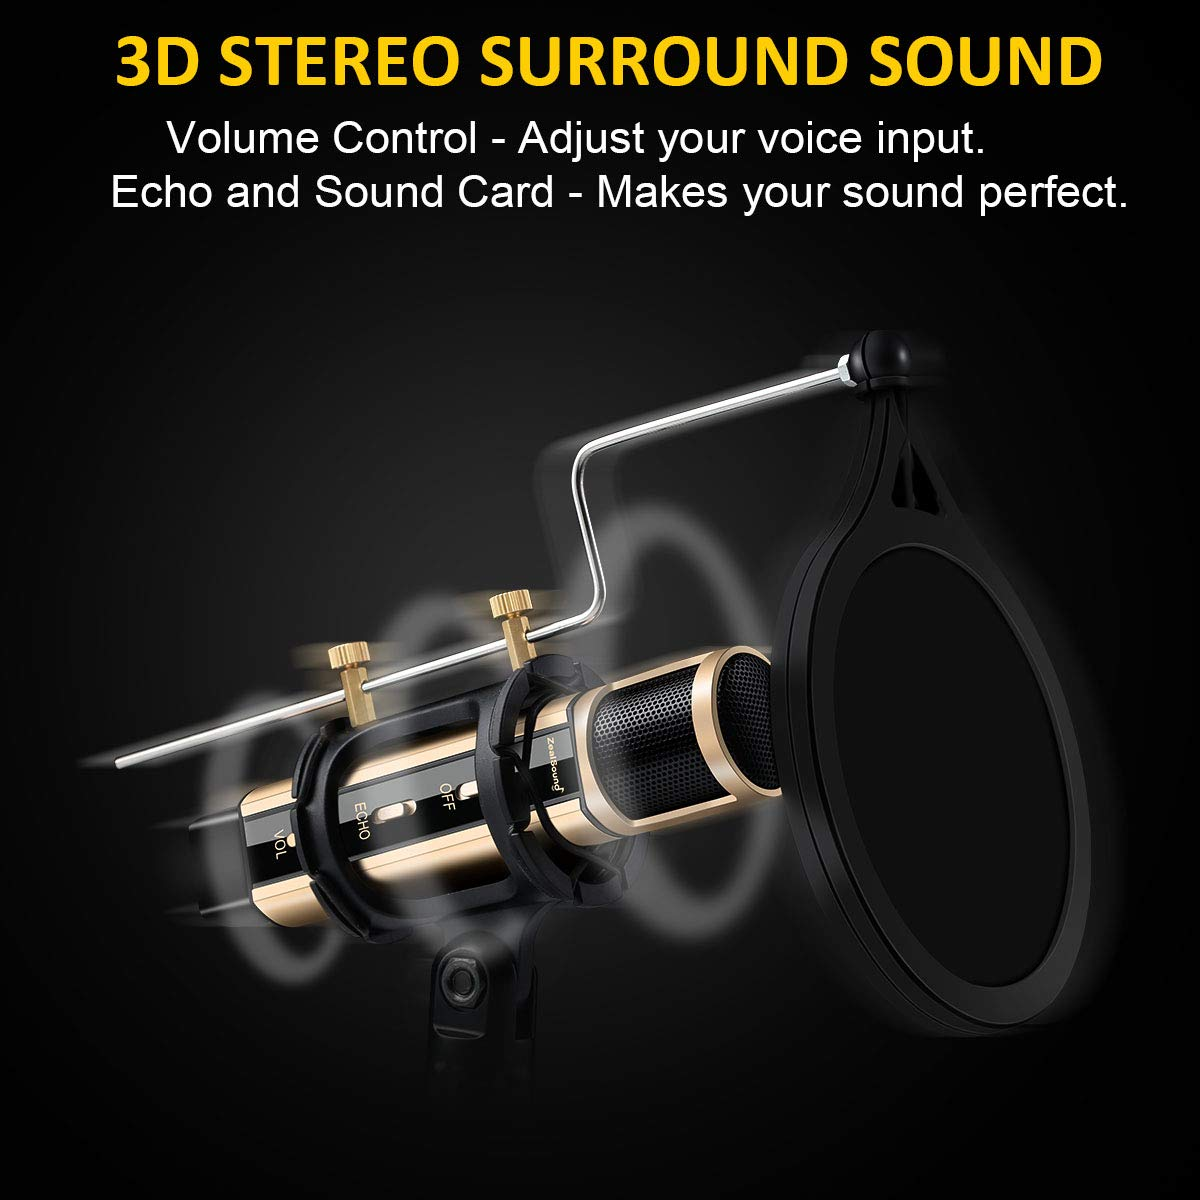 USB Microphone, ZealSound Metal Condenser Recording Microphone For Laptop MAC Windows Computer And Phone w/Stand for ASMR Garageband Smule Stream & Youtube Video Studio Voice Overs Broadcast (Gold) by ZealSound (Image #3)